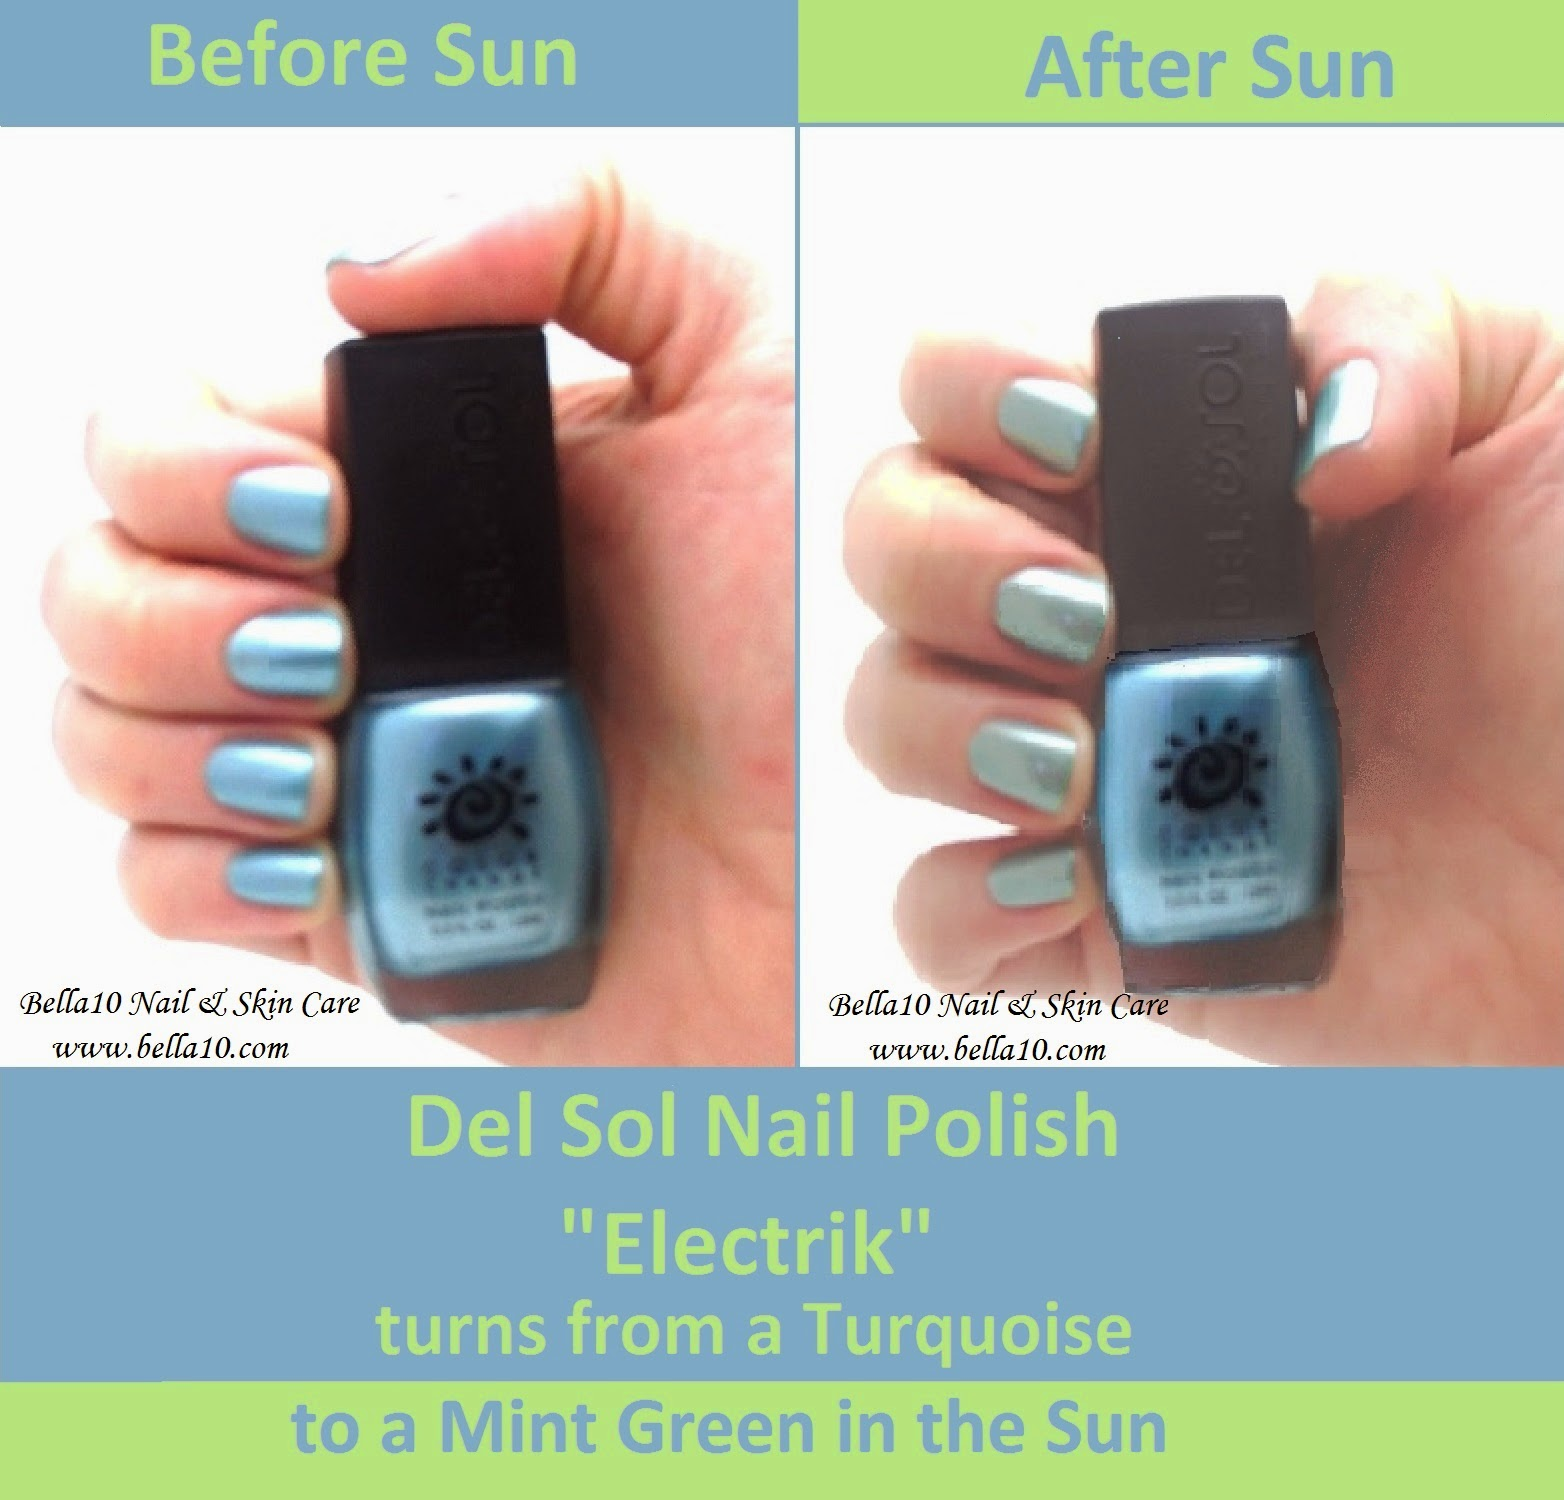 Bella10 Nails: Fun in the Sun - Color Changing Nail Polish! - Part 2